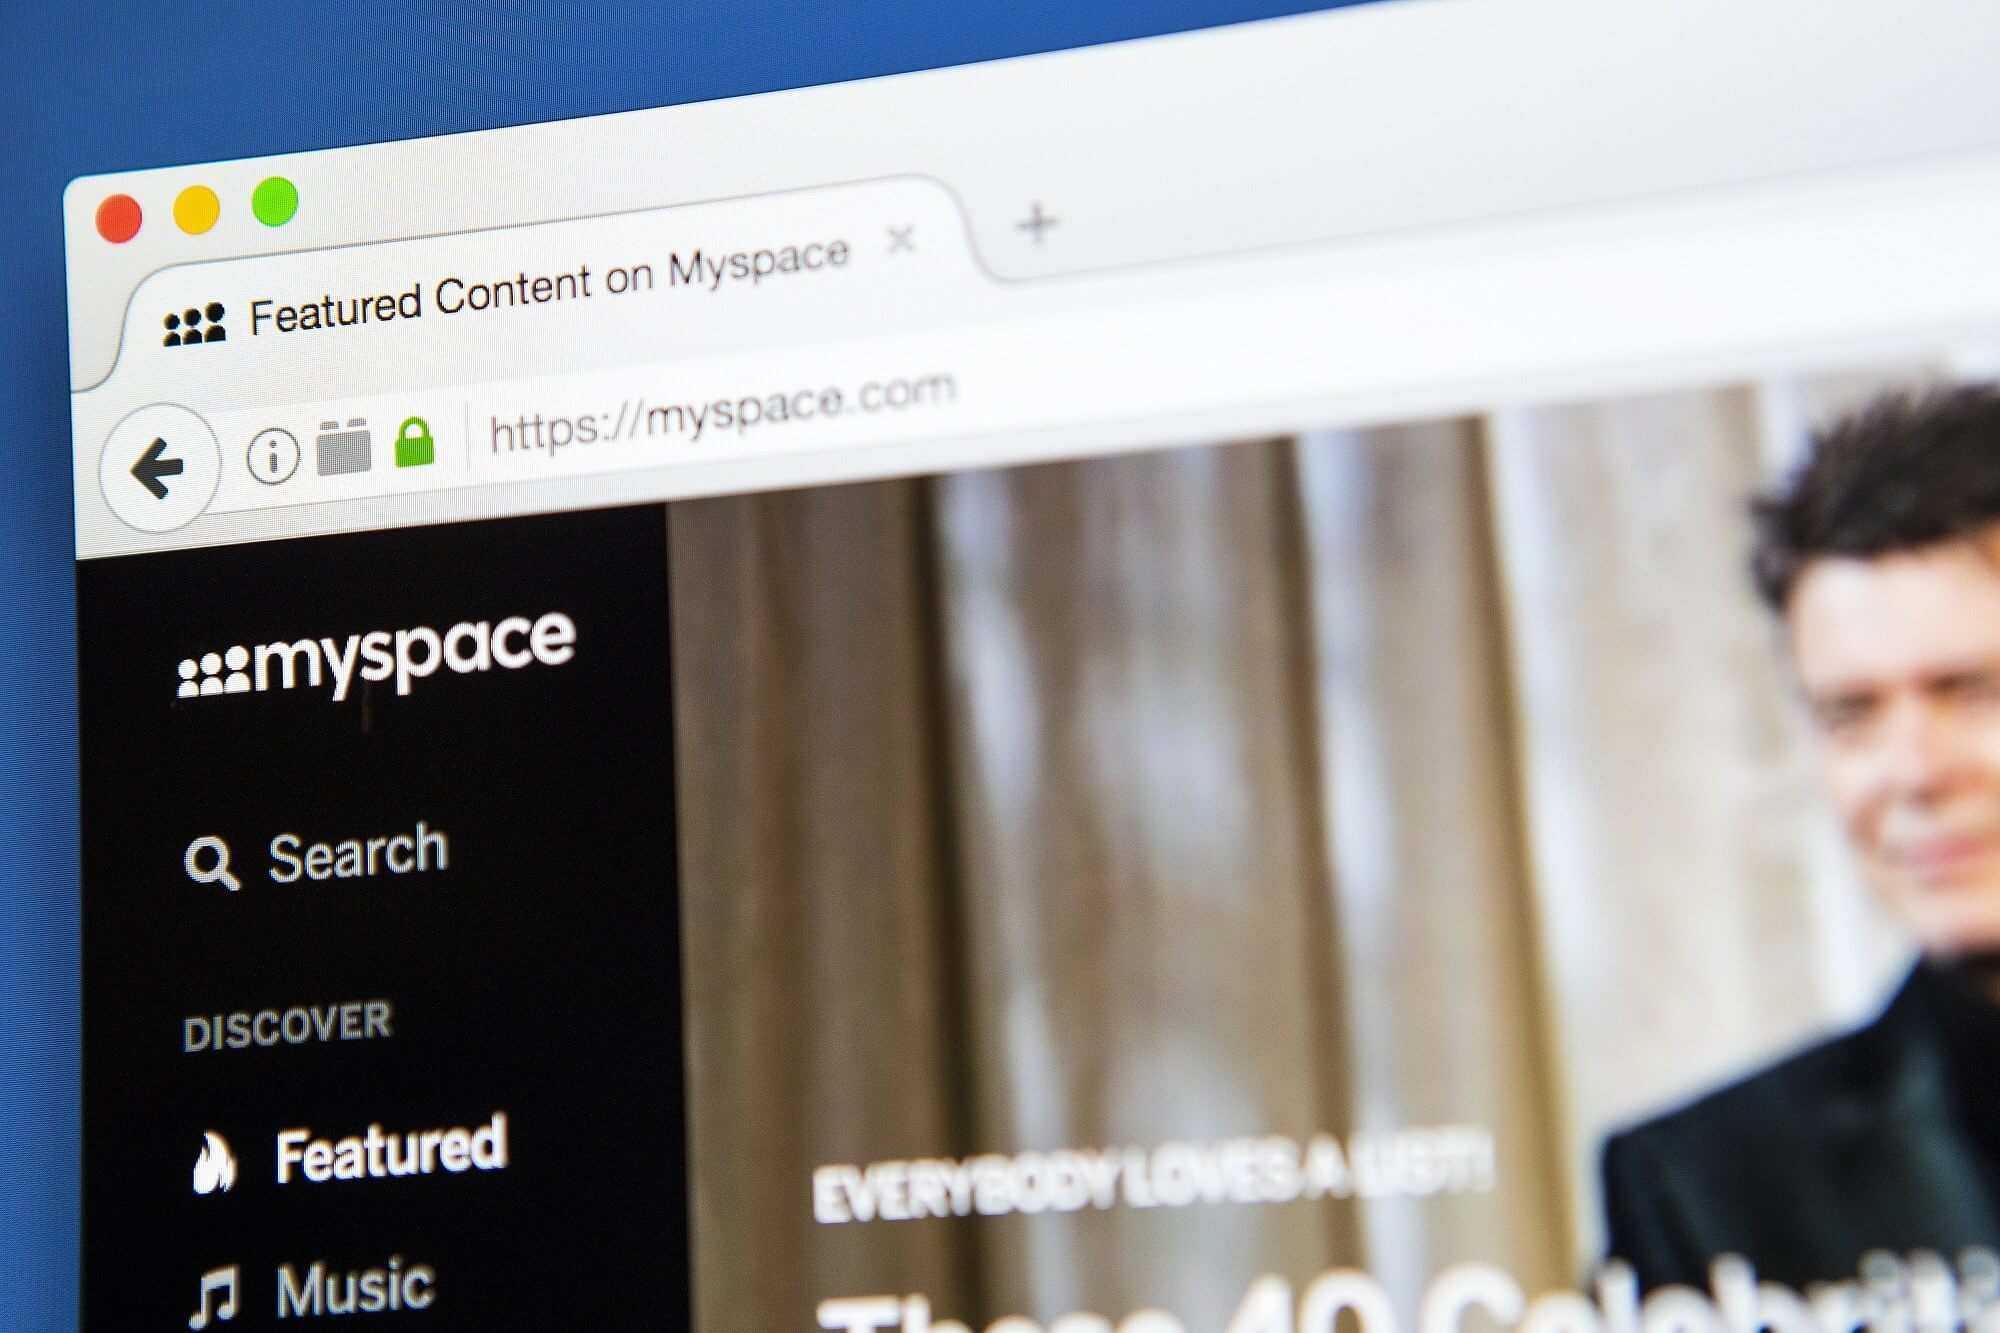 MySpace has lost 12 years worth of music